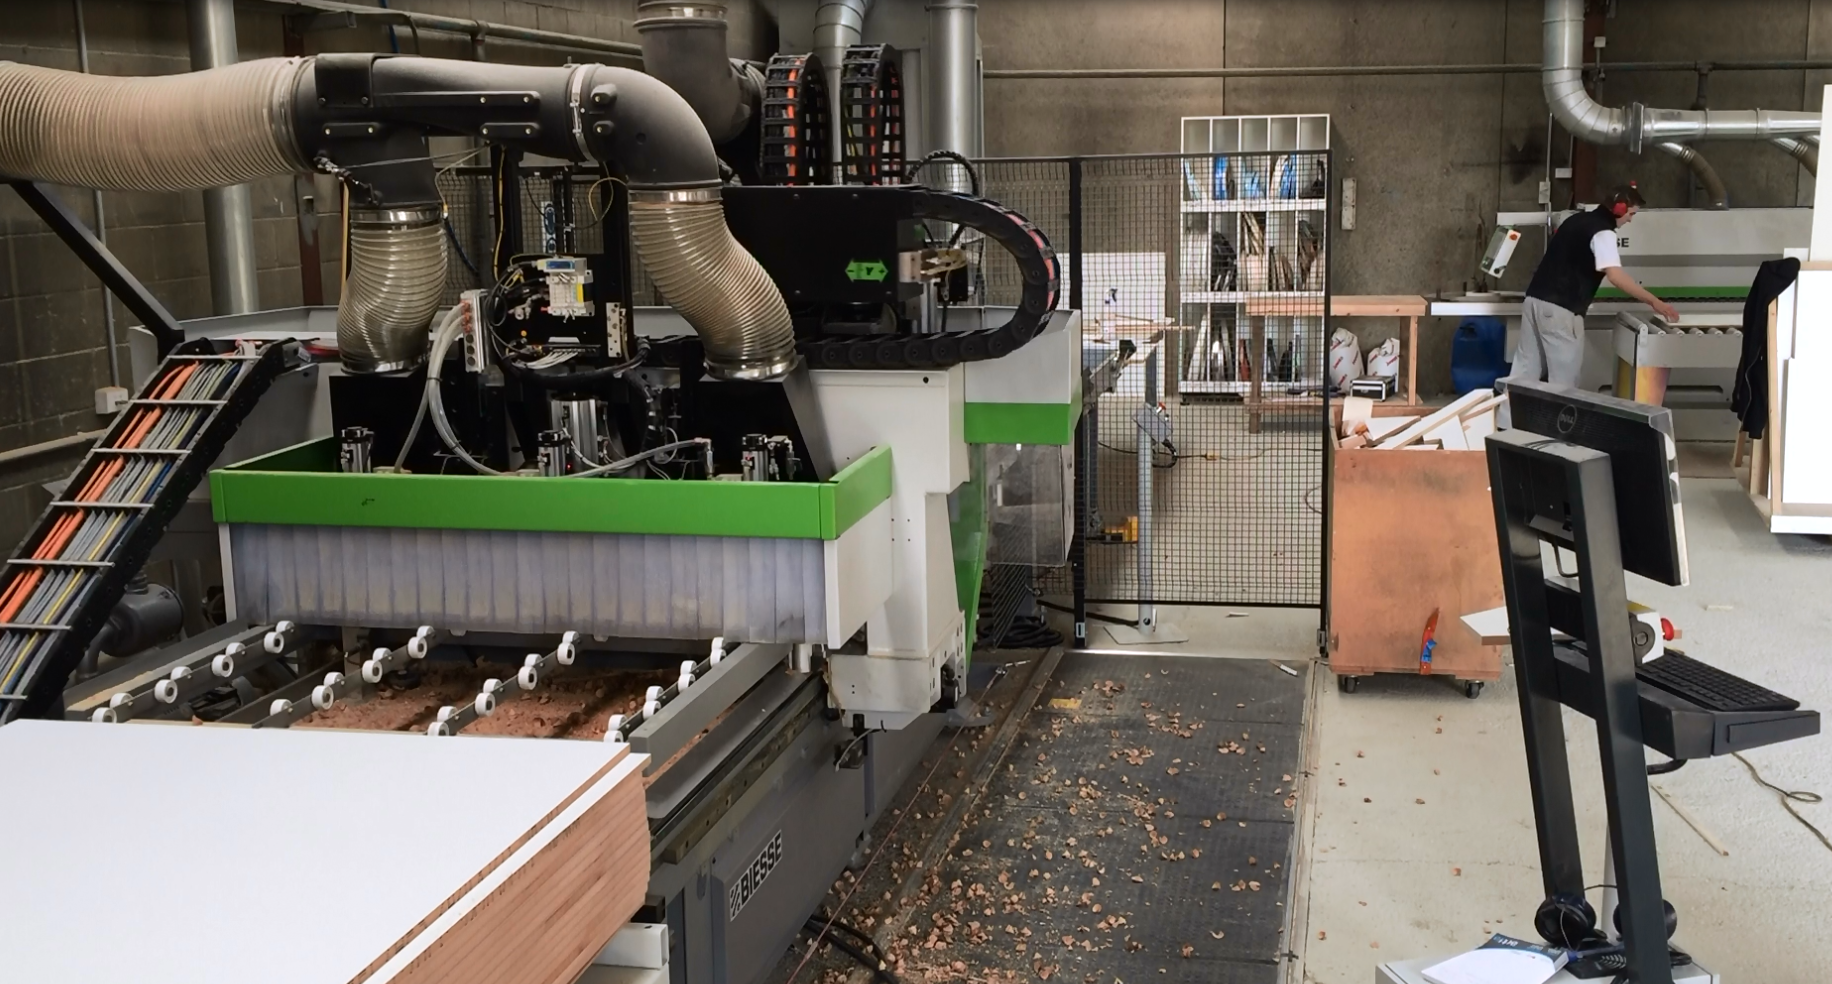 inside the premier kitchens factory using latest CNC cutting machines